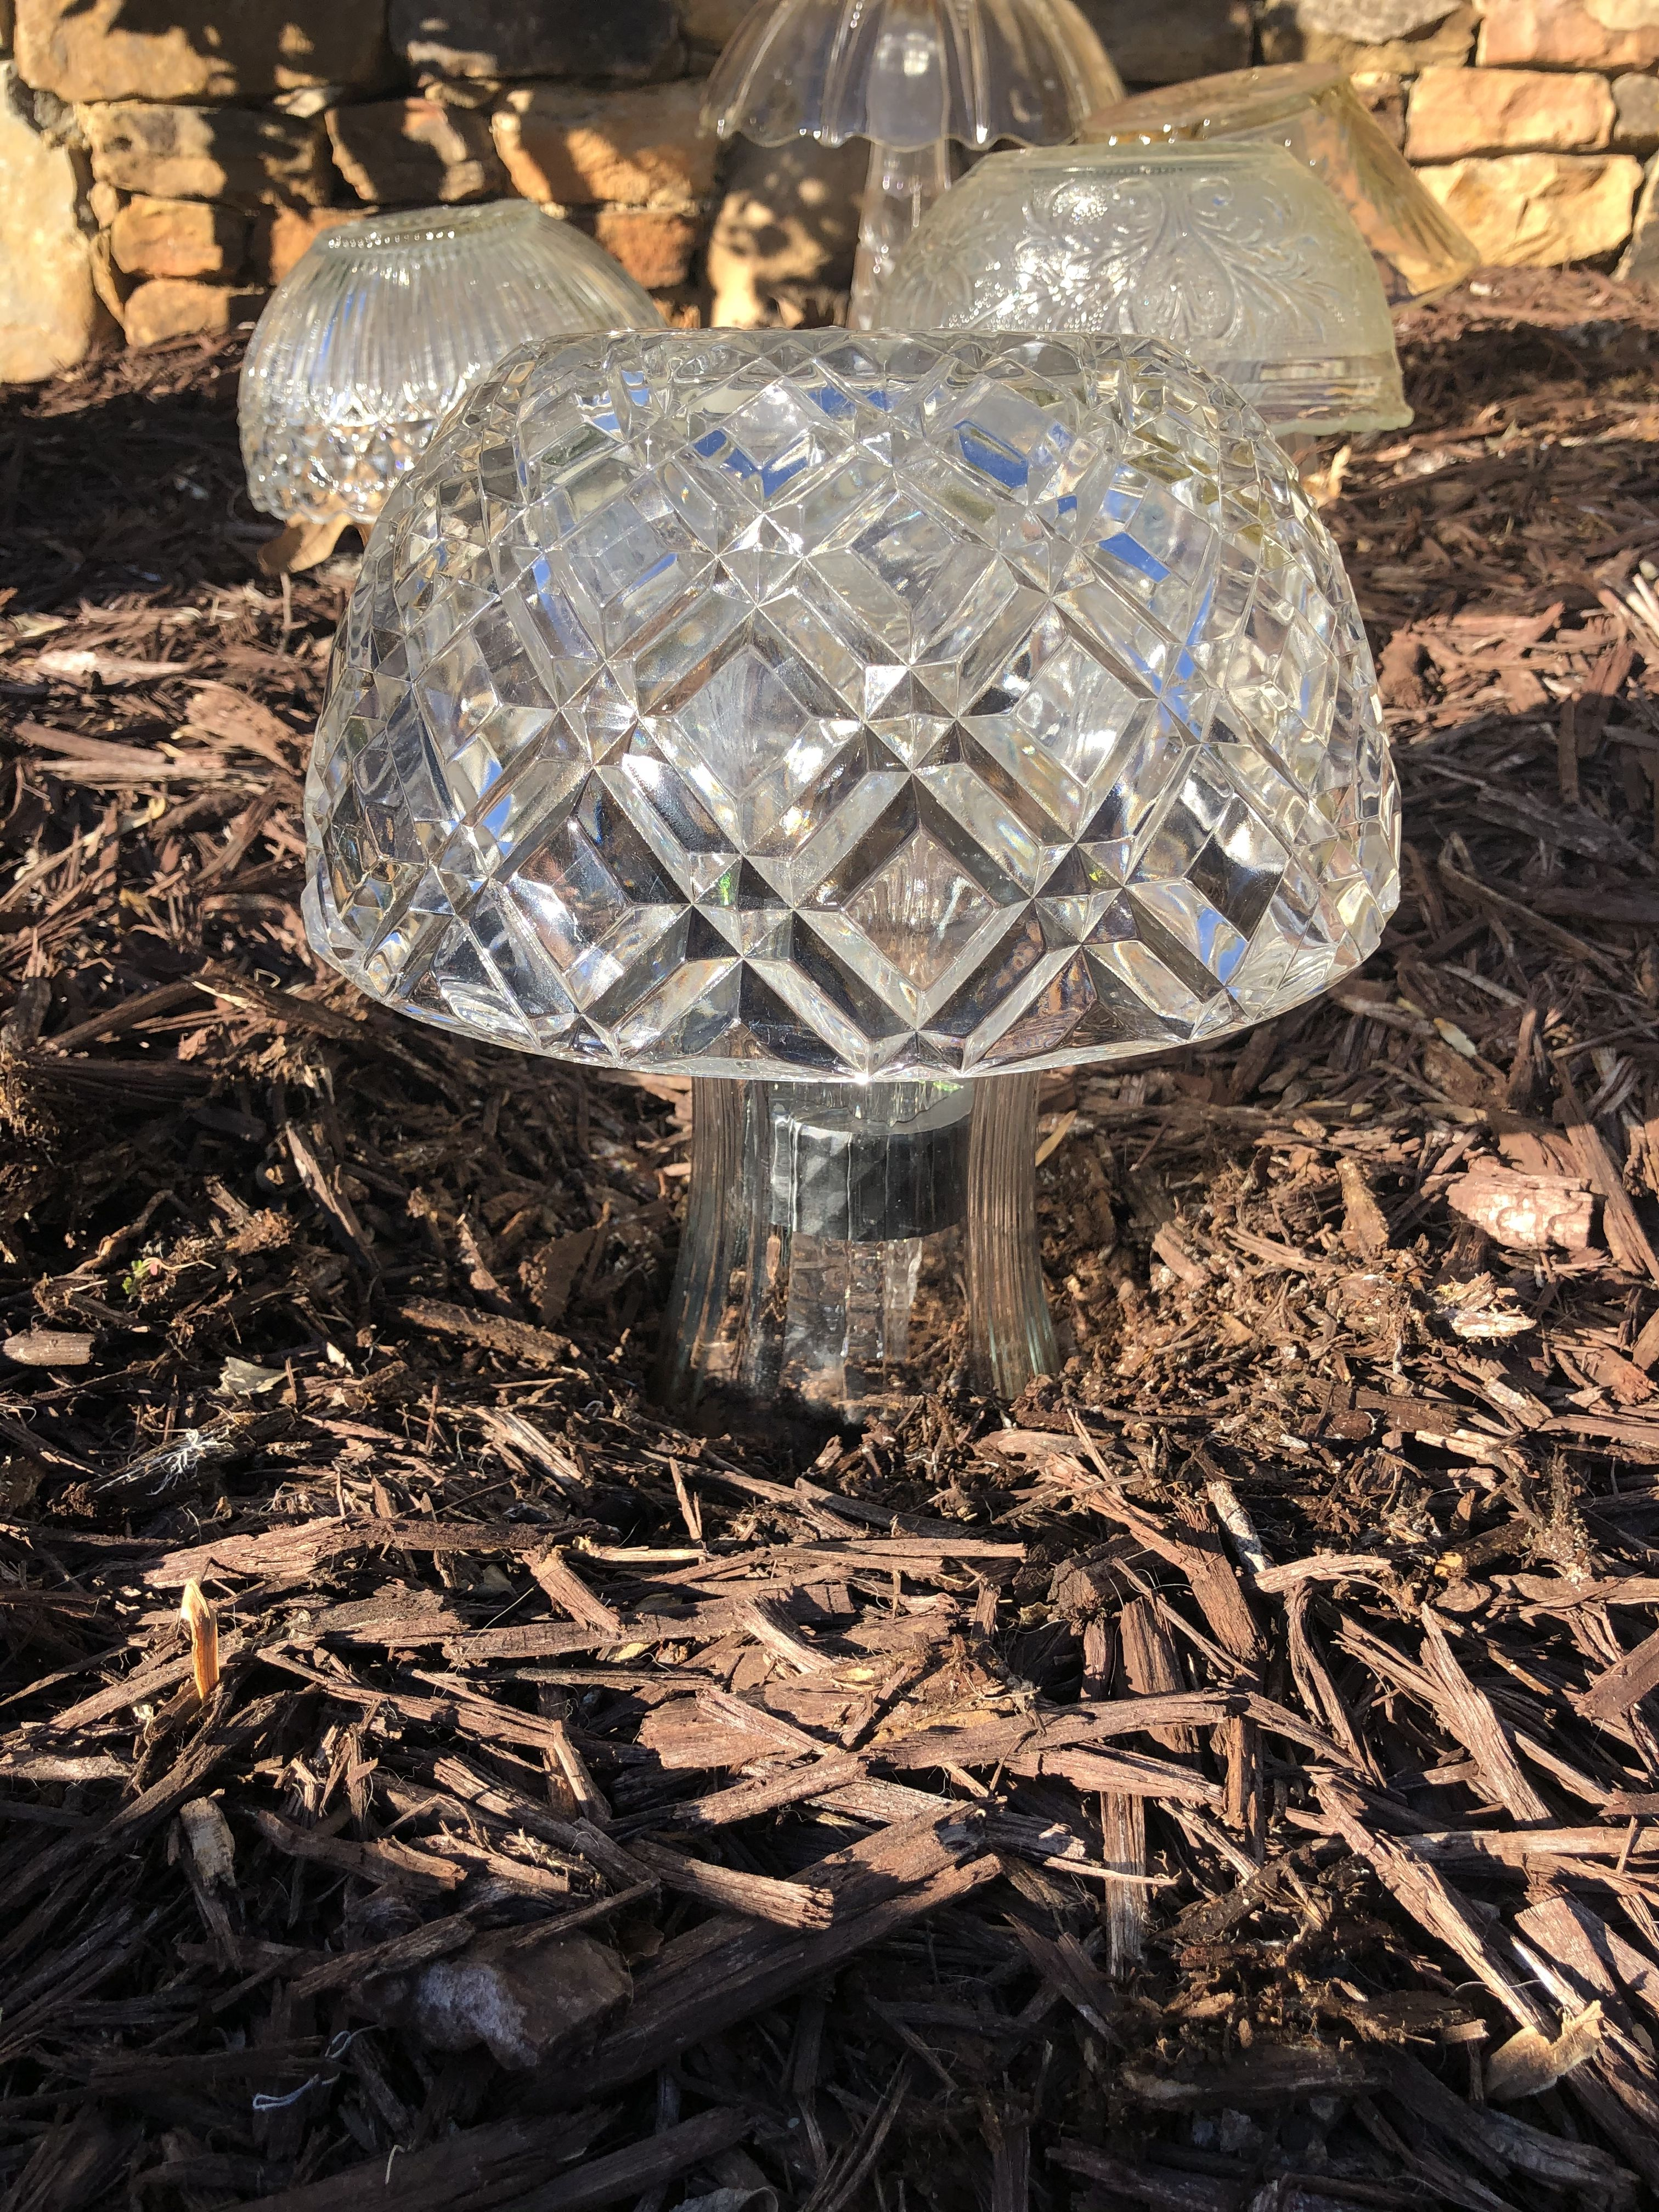 Diy Glass Solar Mushroom The Shabby Tree Try If For Under 5 In 2020 Diy Glass Diy Candle Decor Mushroom Lights